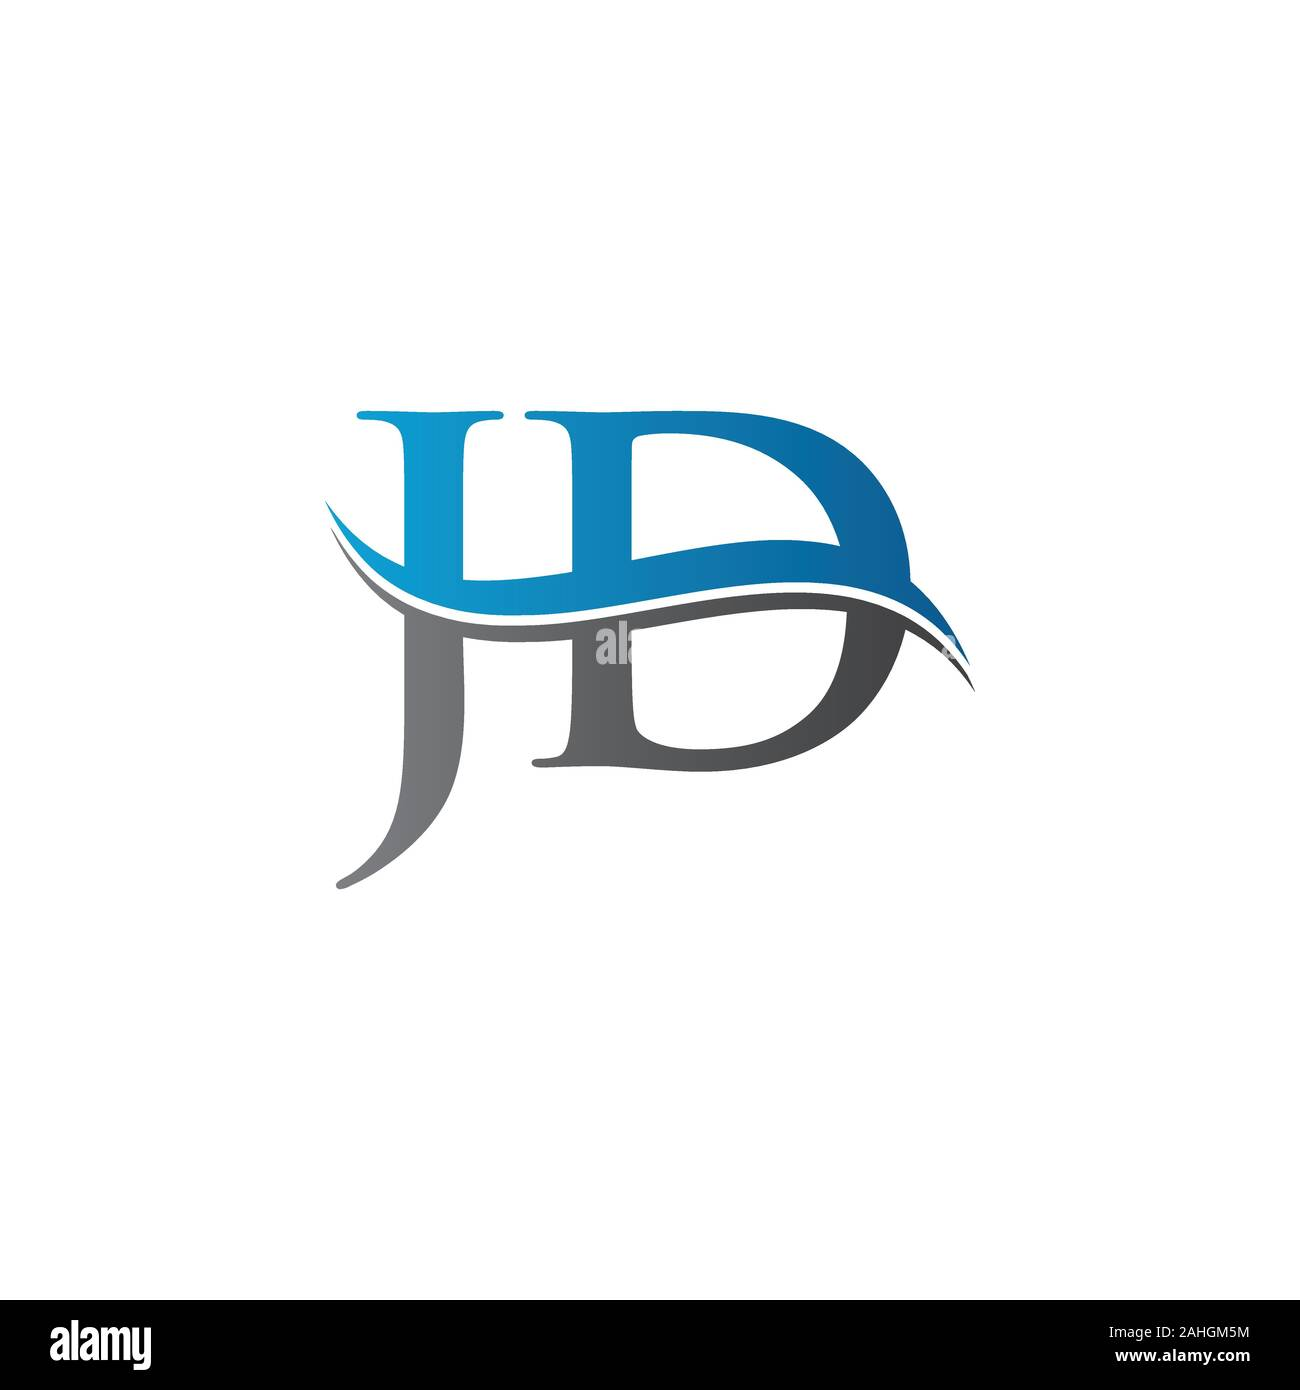 jd letter type logo design vector template abstract letter jd logo design stock vector image art alamy https www alamy com jd letter type logo design vector template abstract letter jd logo design image337813216 html